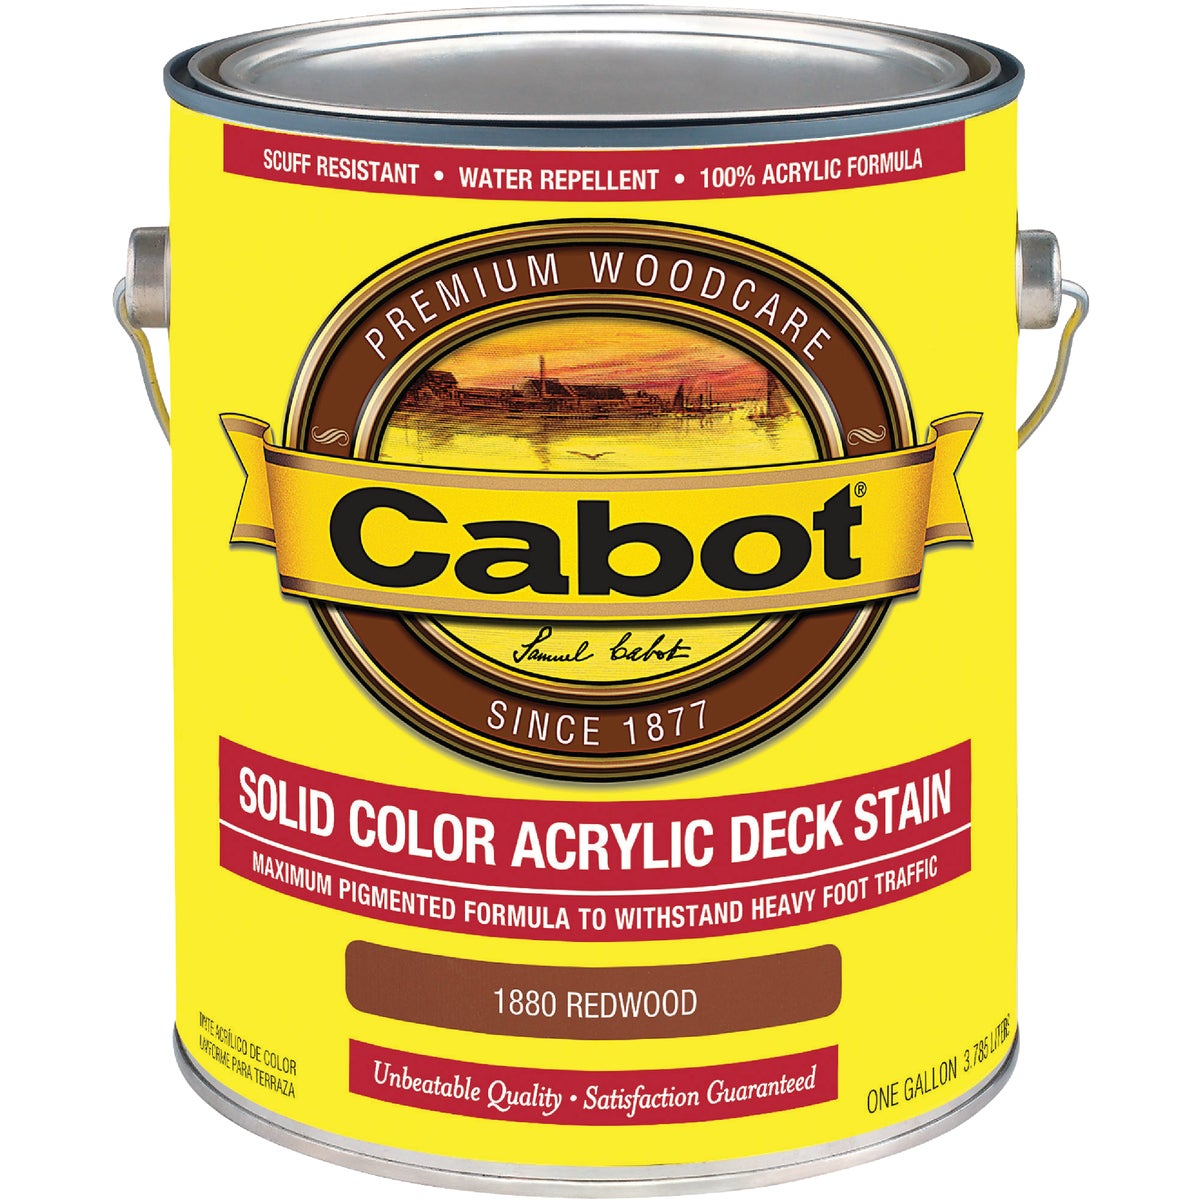 REDWOOD SOLID DECK STAIN - 140.0001880.007 by Valspar Corp